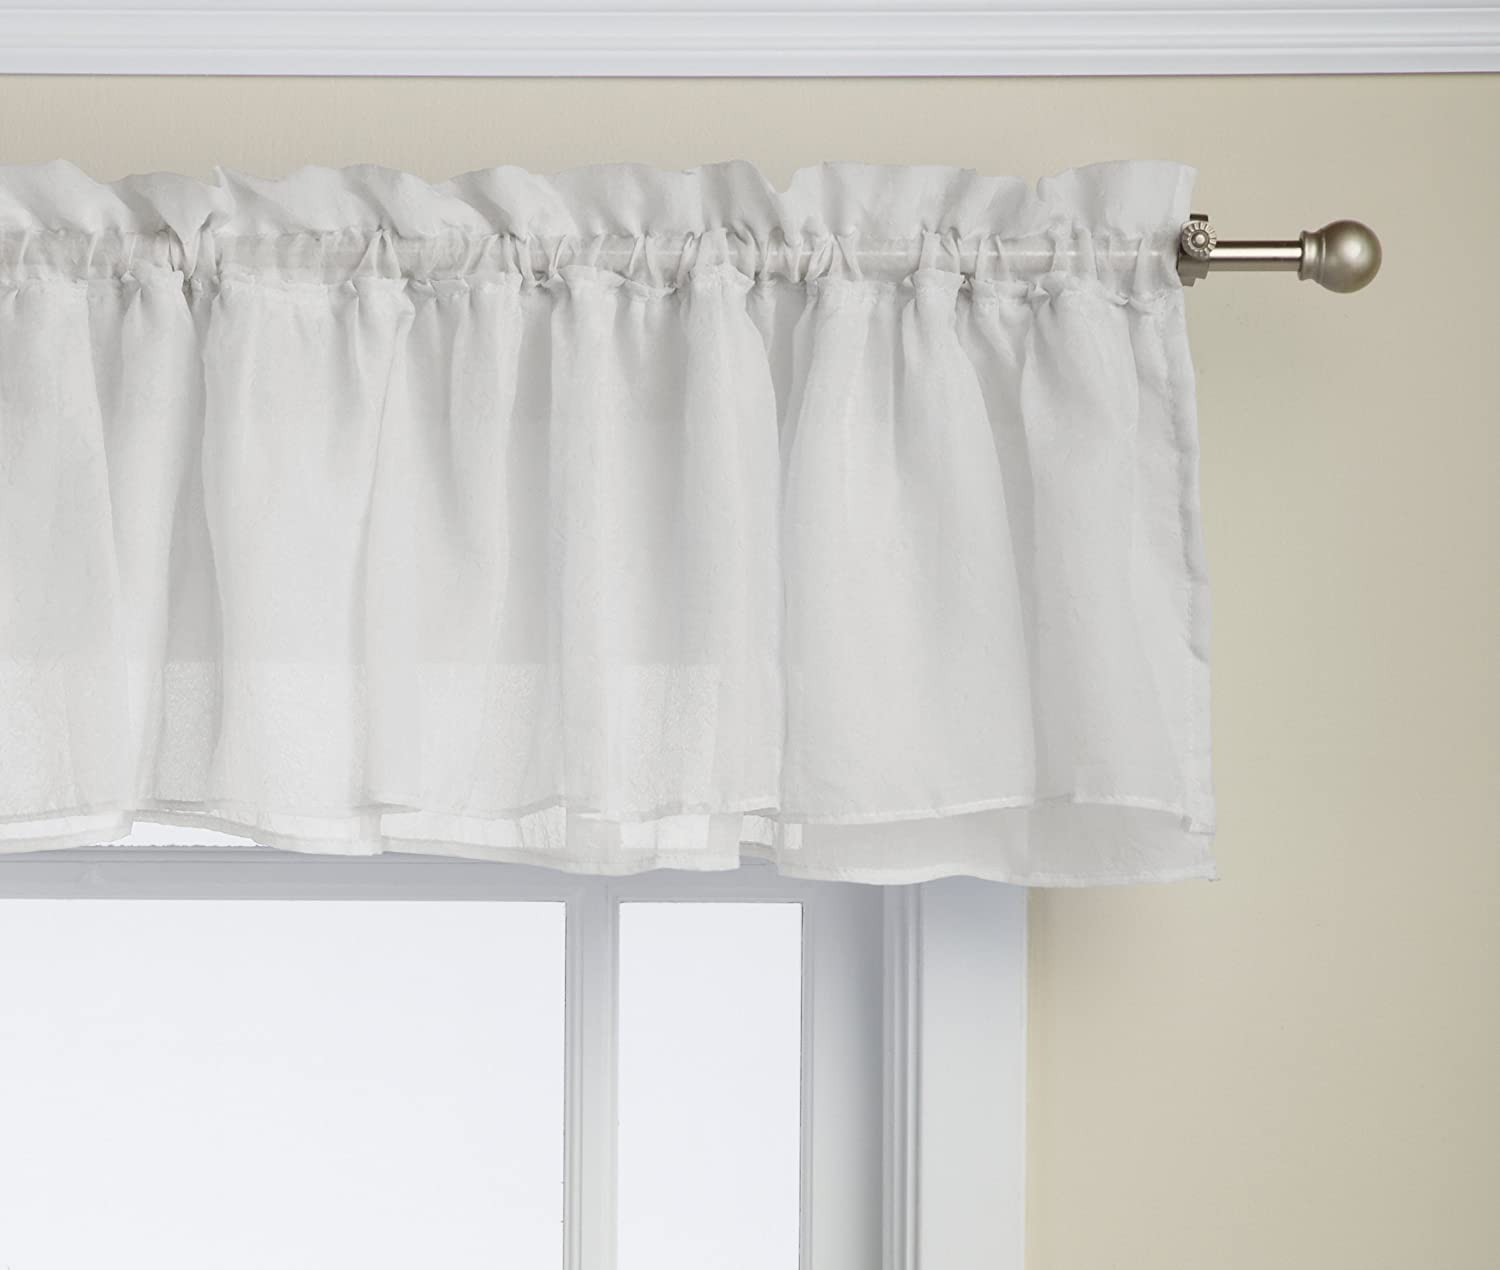 Elegant Amazon.com: Lorraine Home Fashions Gypsy Shabby Chic Layered Ruffle Window  Valance, 60 By 15 Inch, White: Home U0026 Kitchen